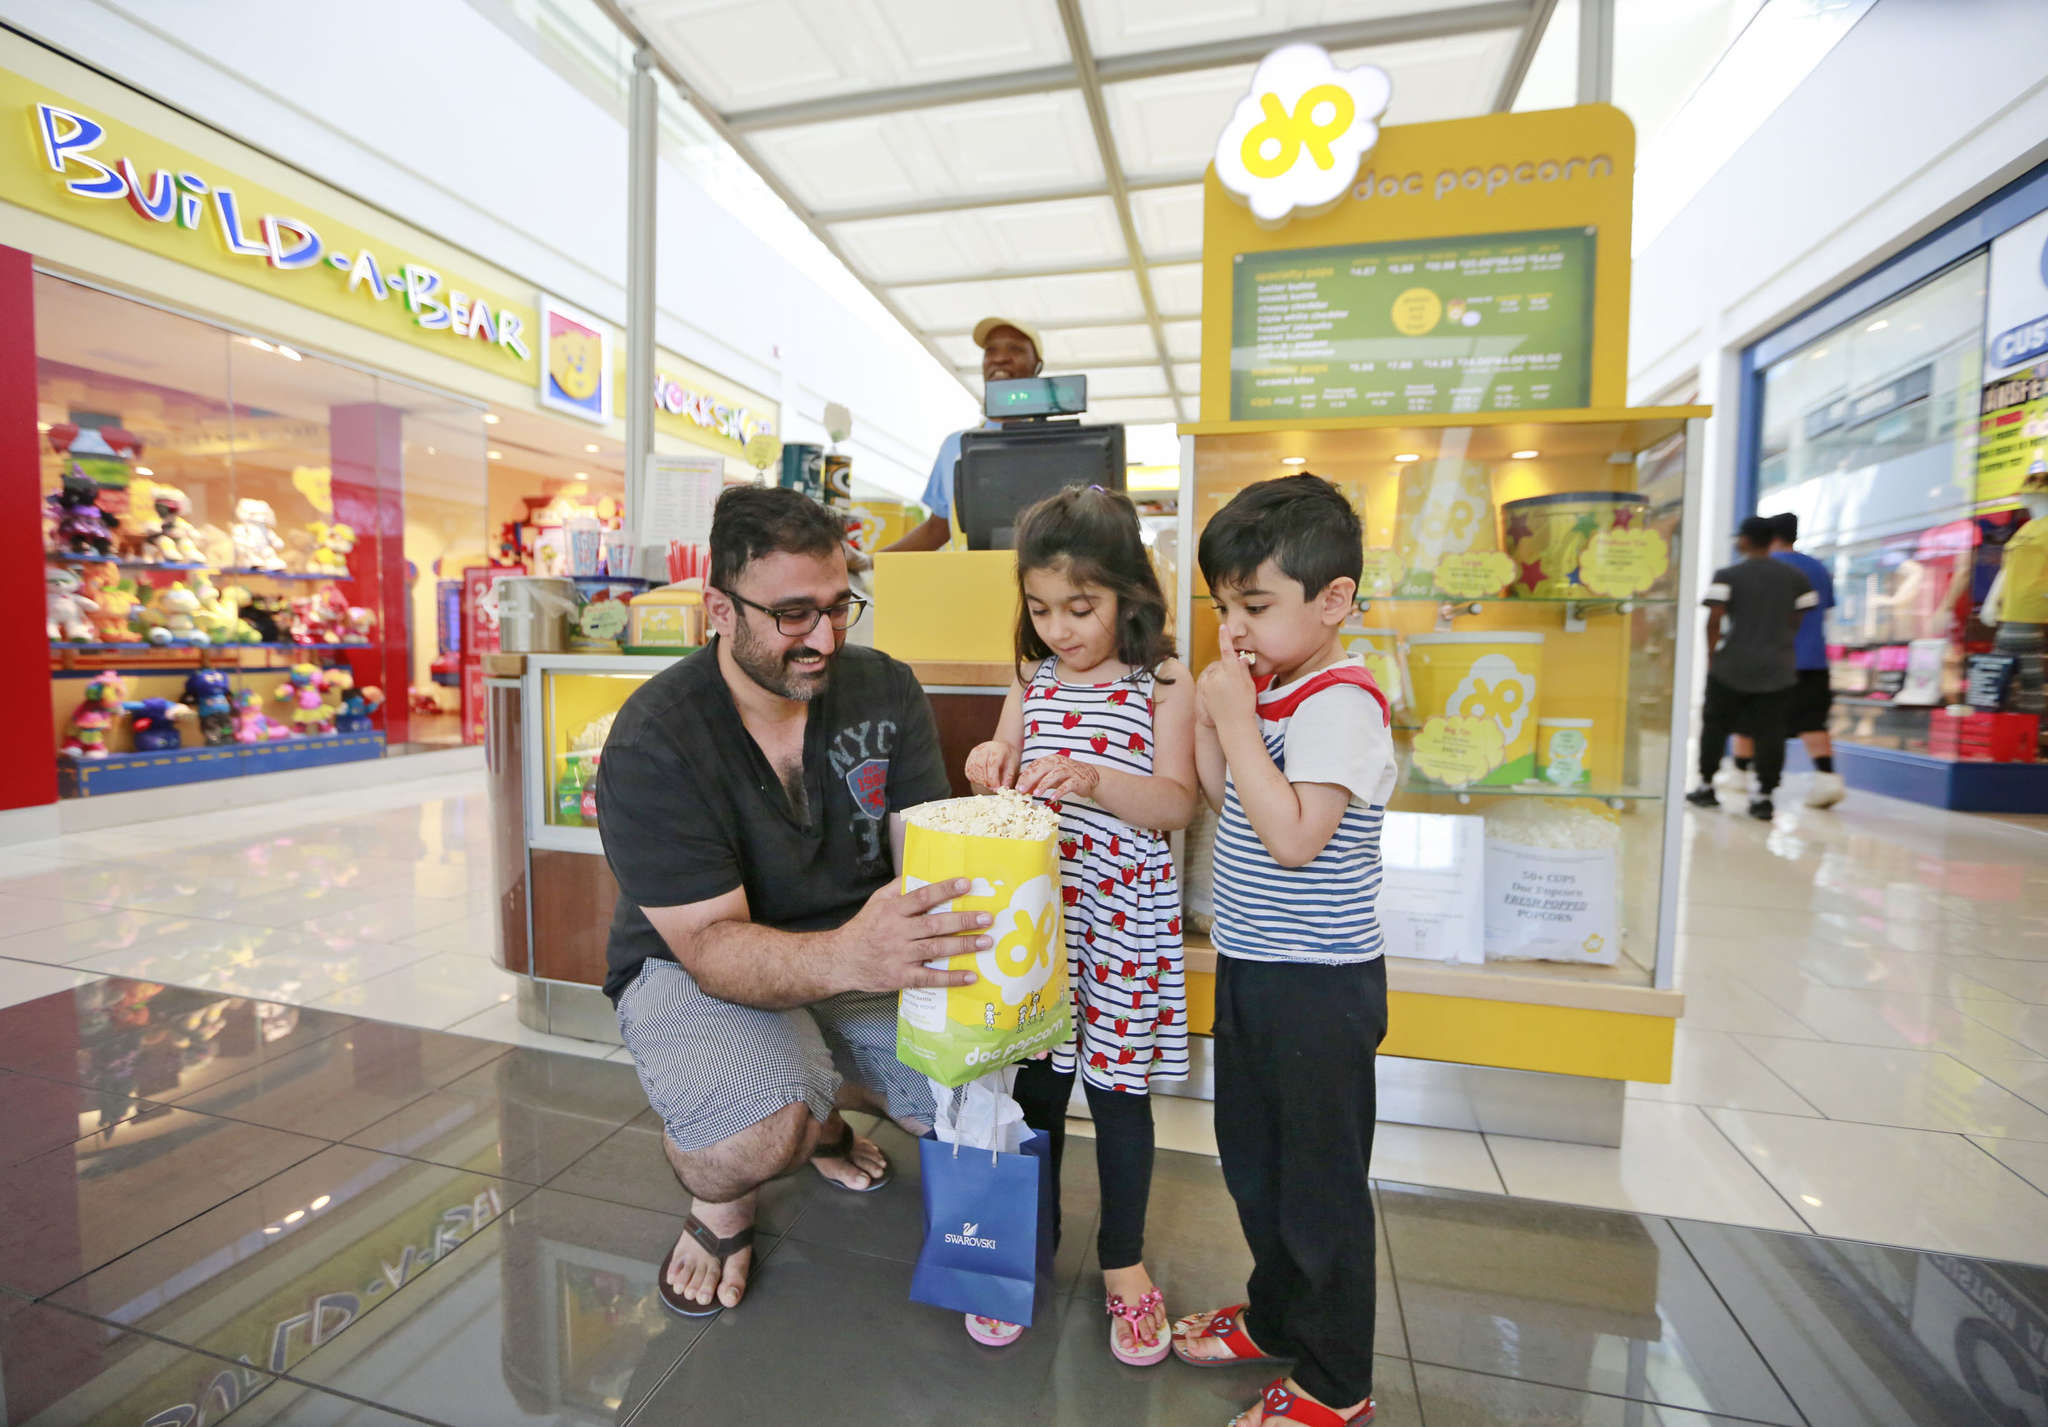 Laeeq Arshad with popcorn for his daughter Ayat and son Azan, at Cherry Hill Mall. Philadelphia is a walkable city, and popcorn is a good snack fit.